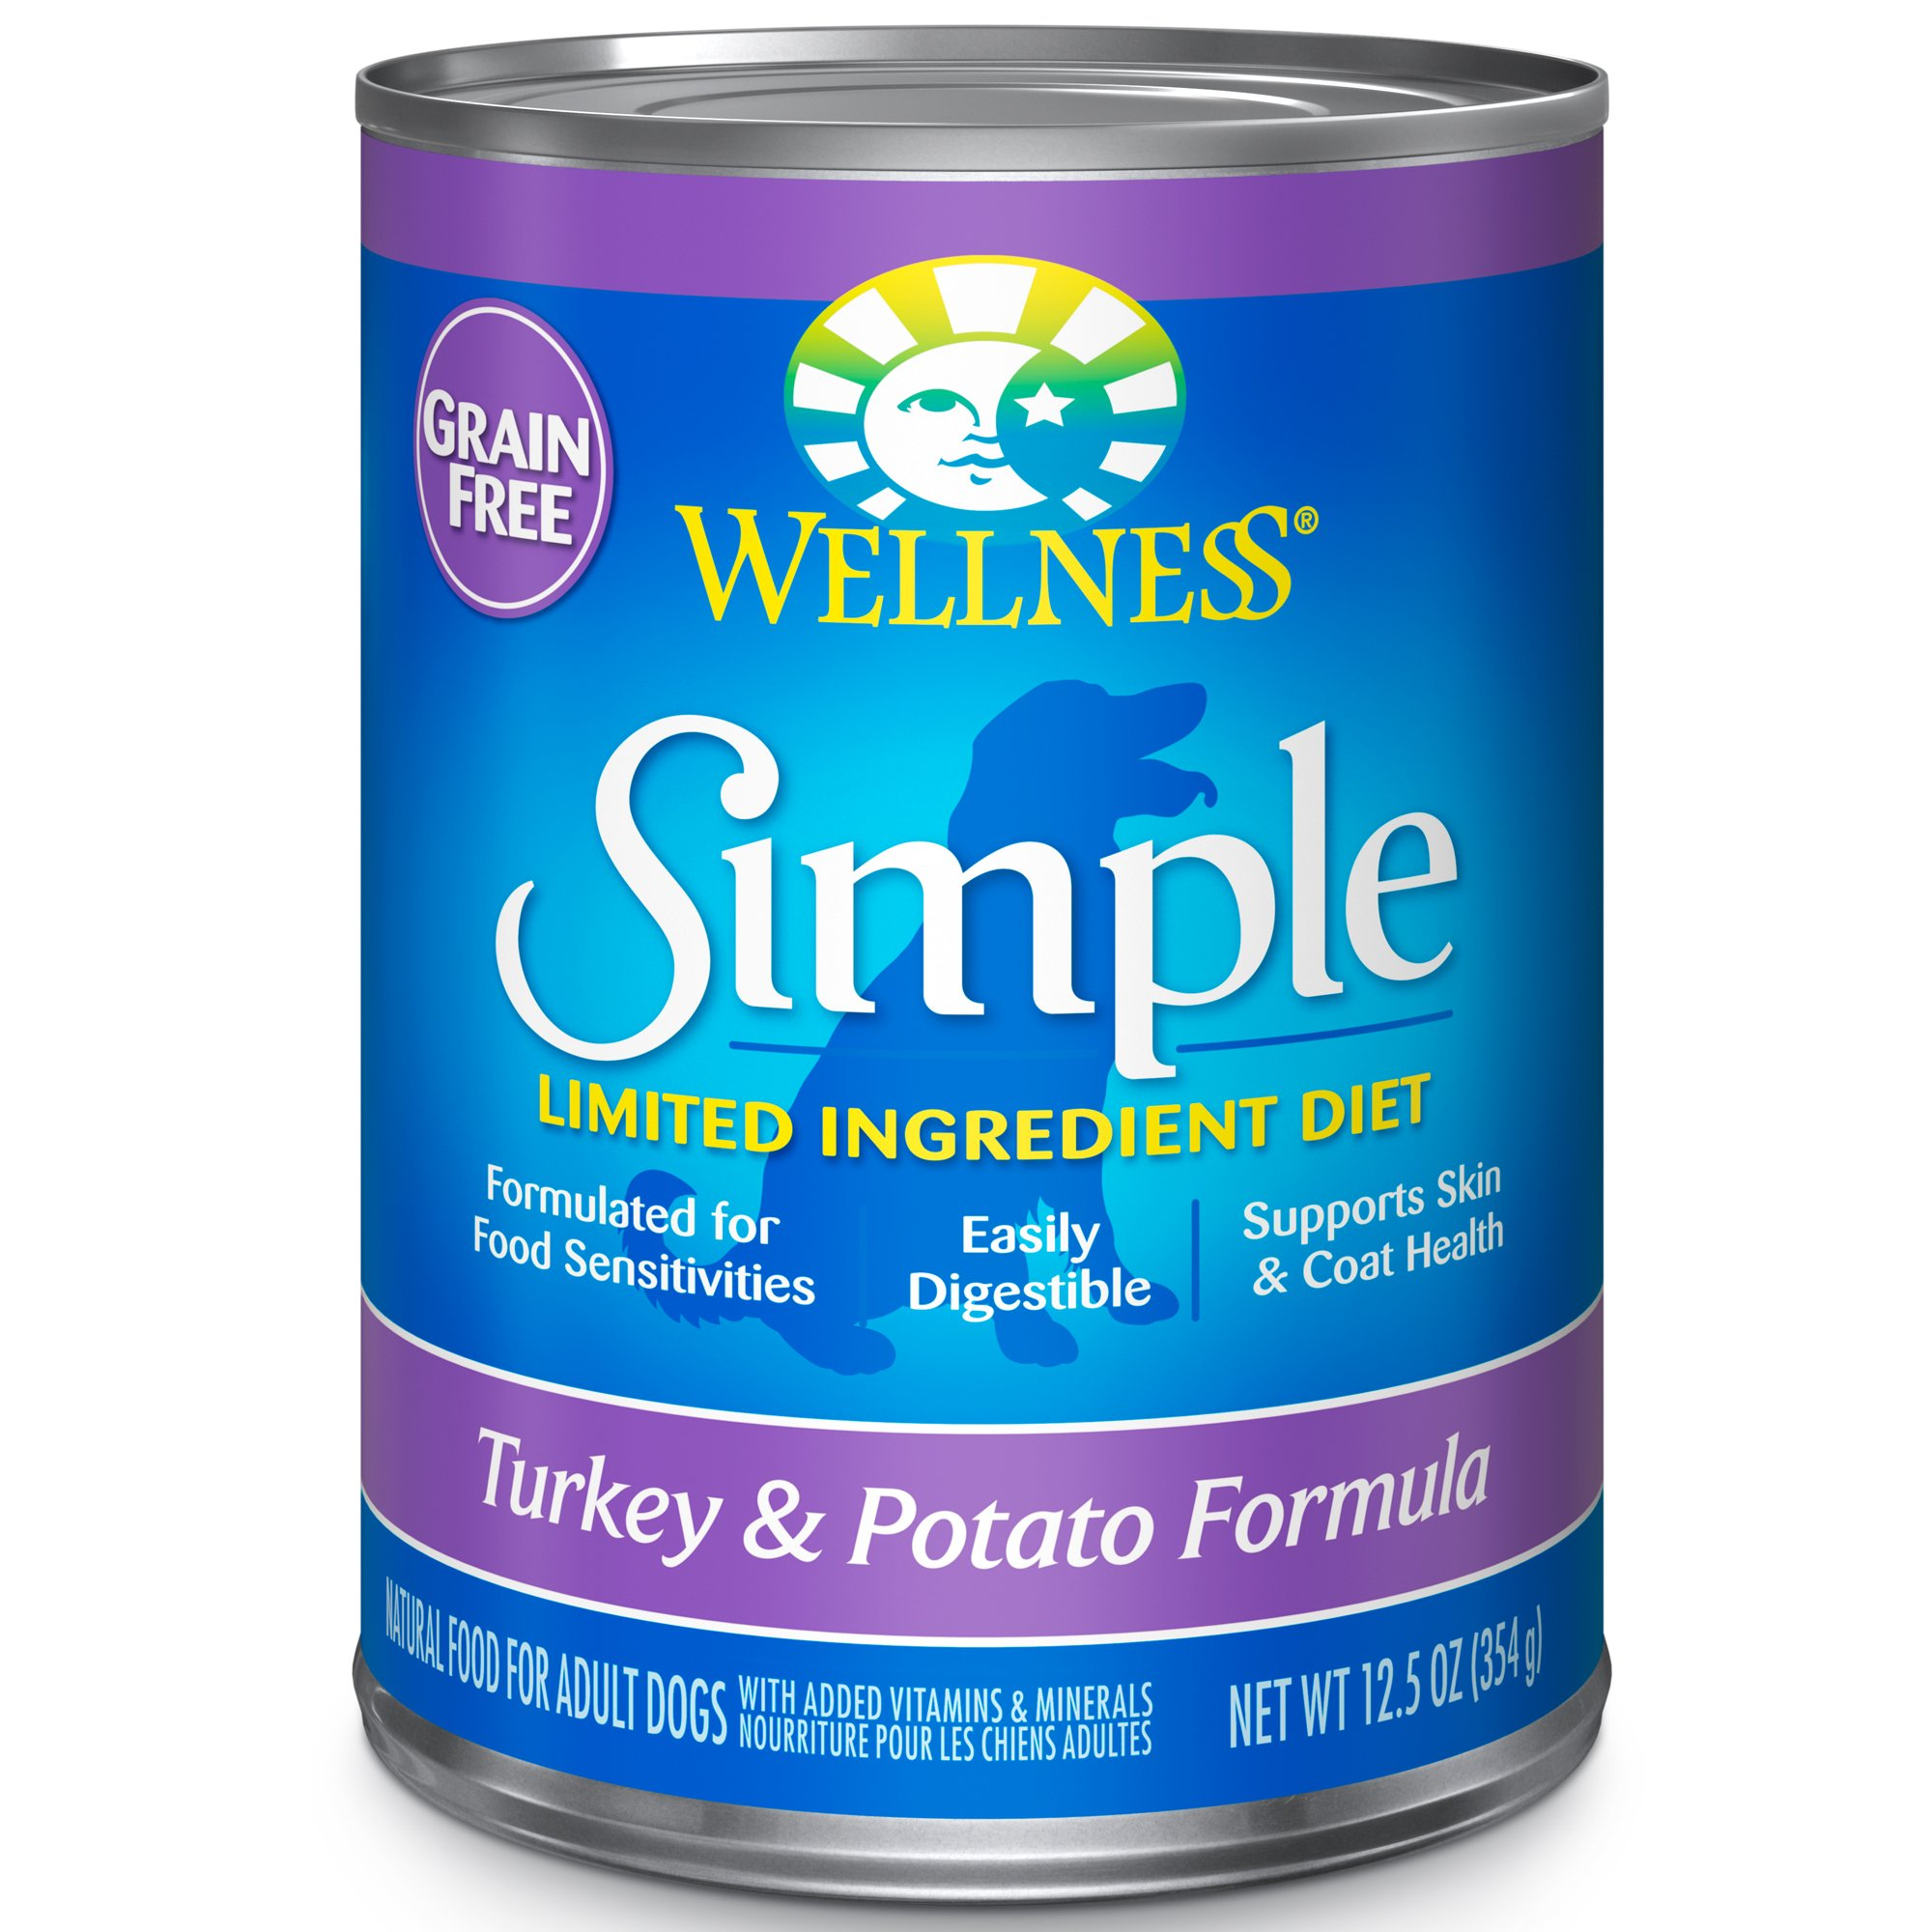 Wellness Canned Dog Food Petco